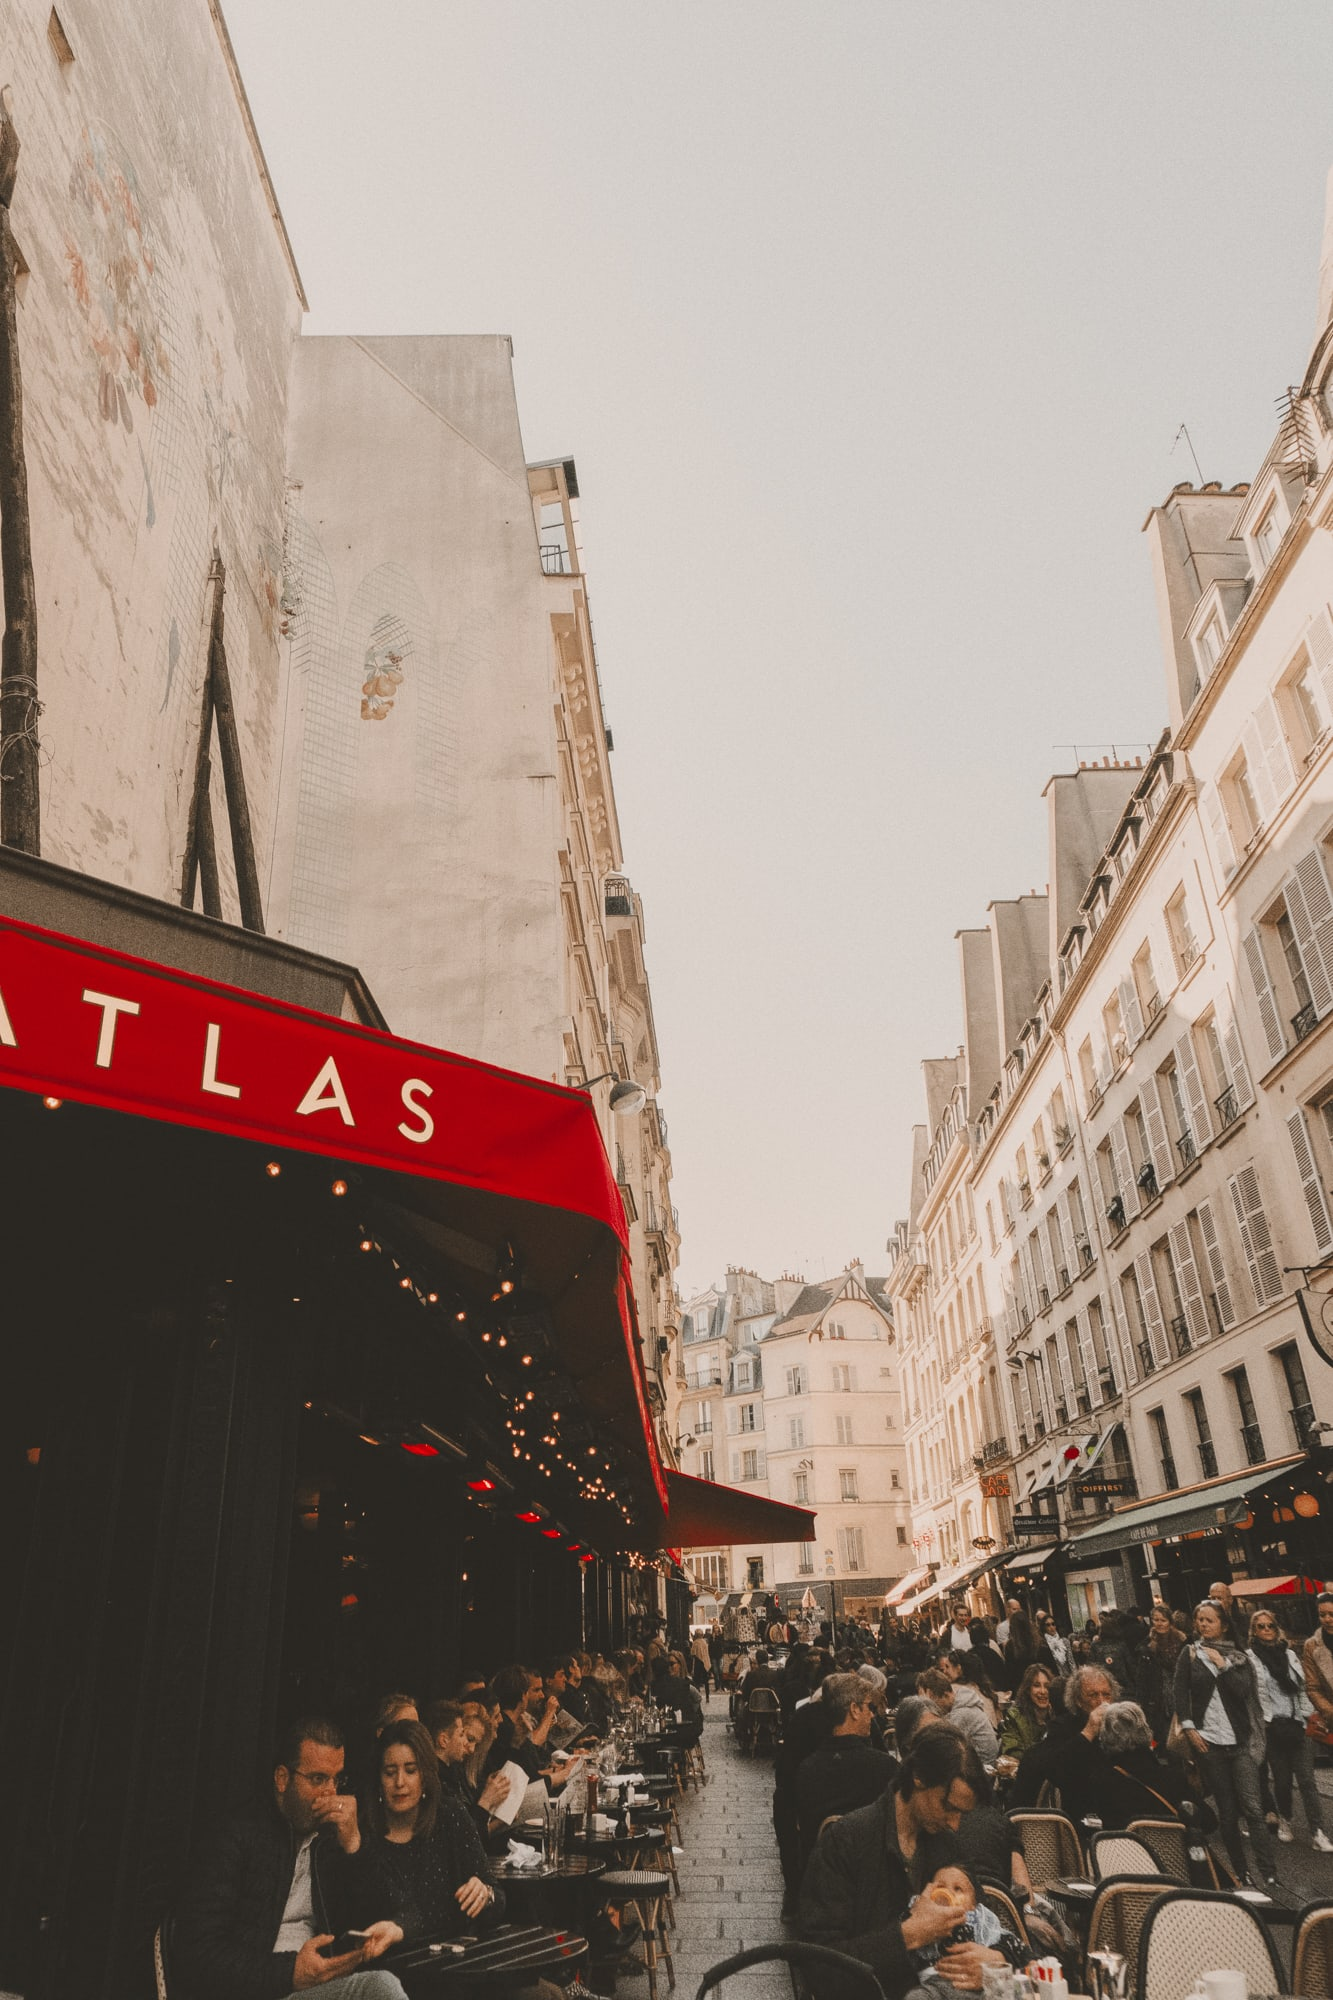 Atlas restaurant in Paris